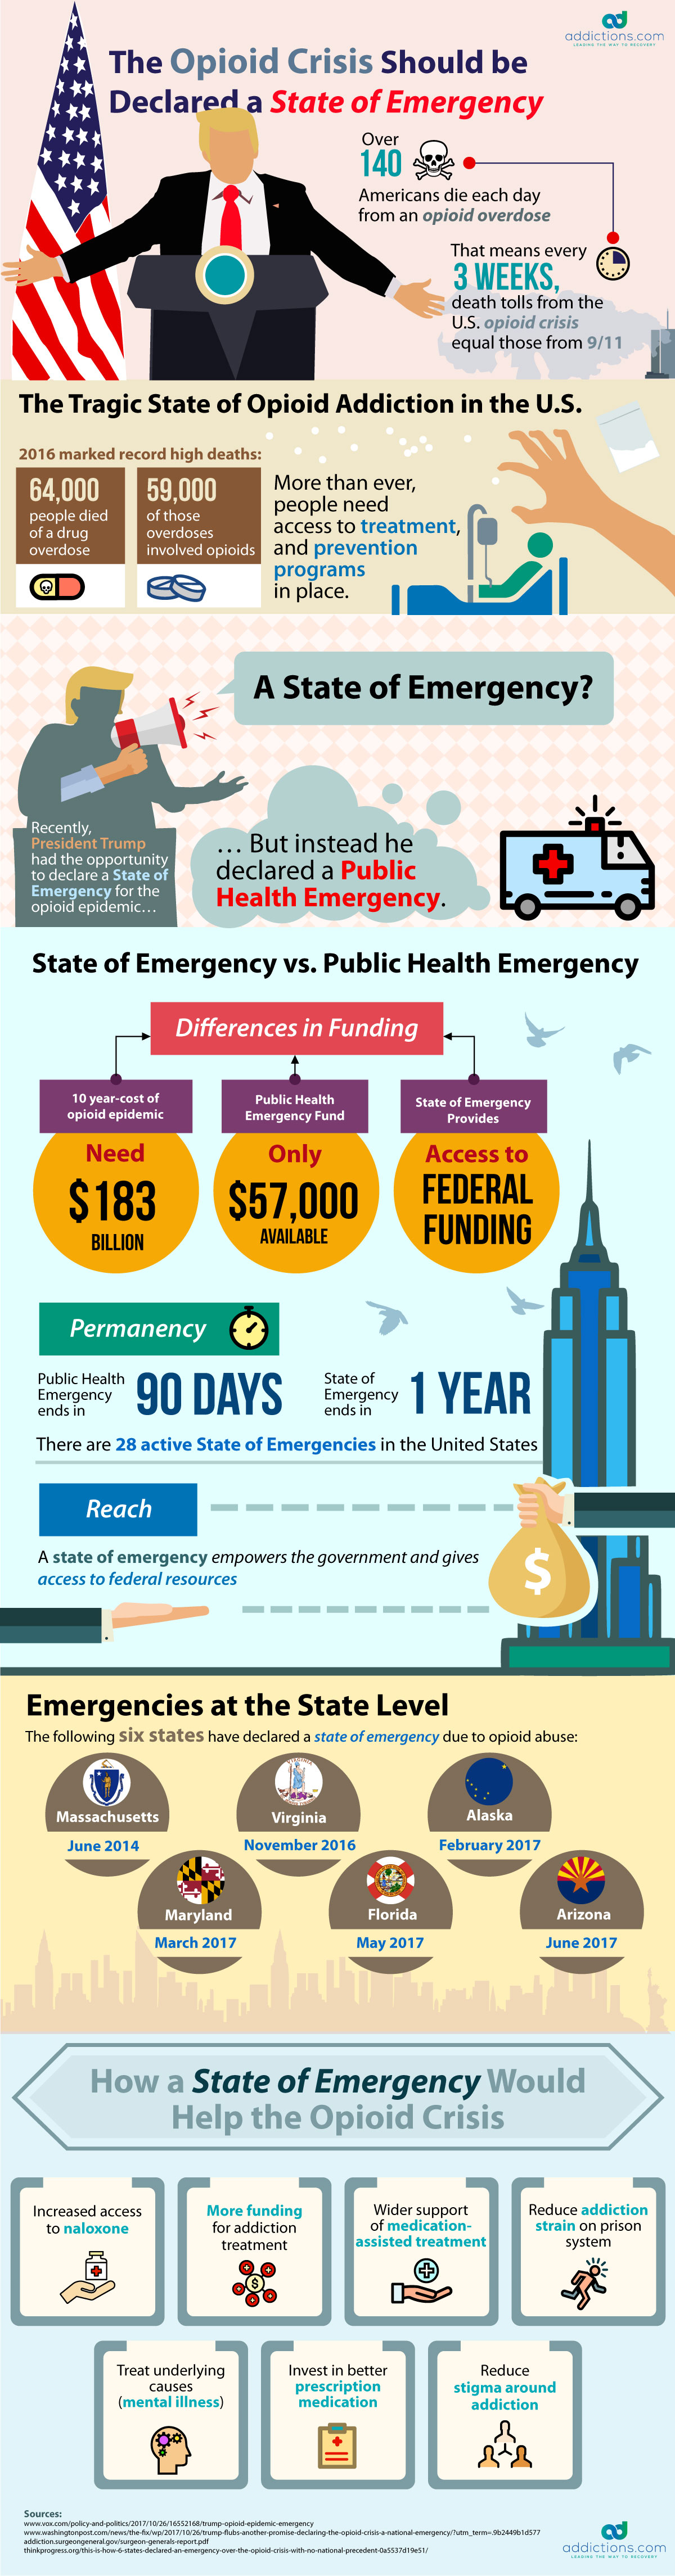 What Does a State of Emergency – Full Infographic